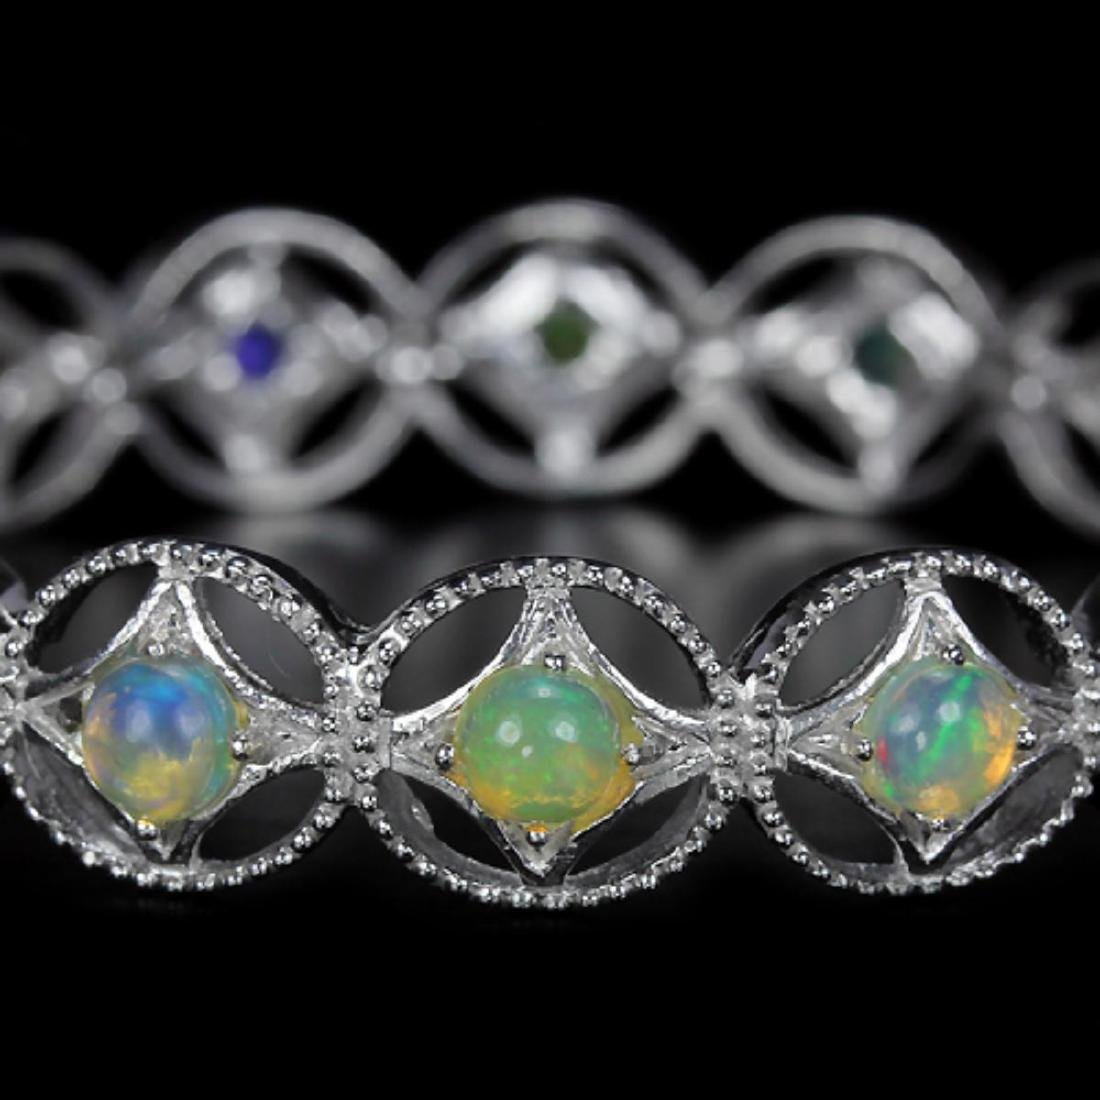 Stunning Natural Multi Color Opal Bracelet - 2